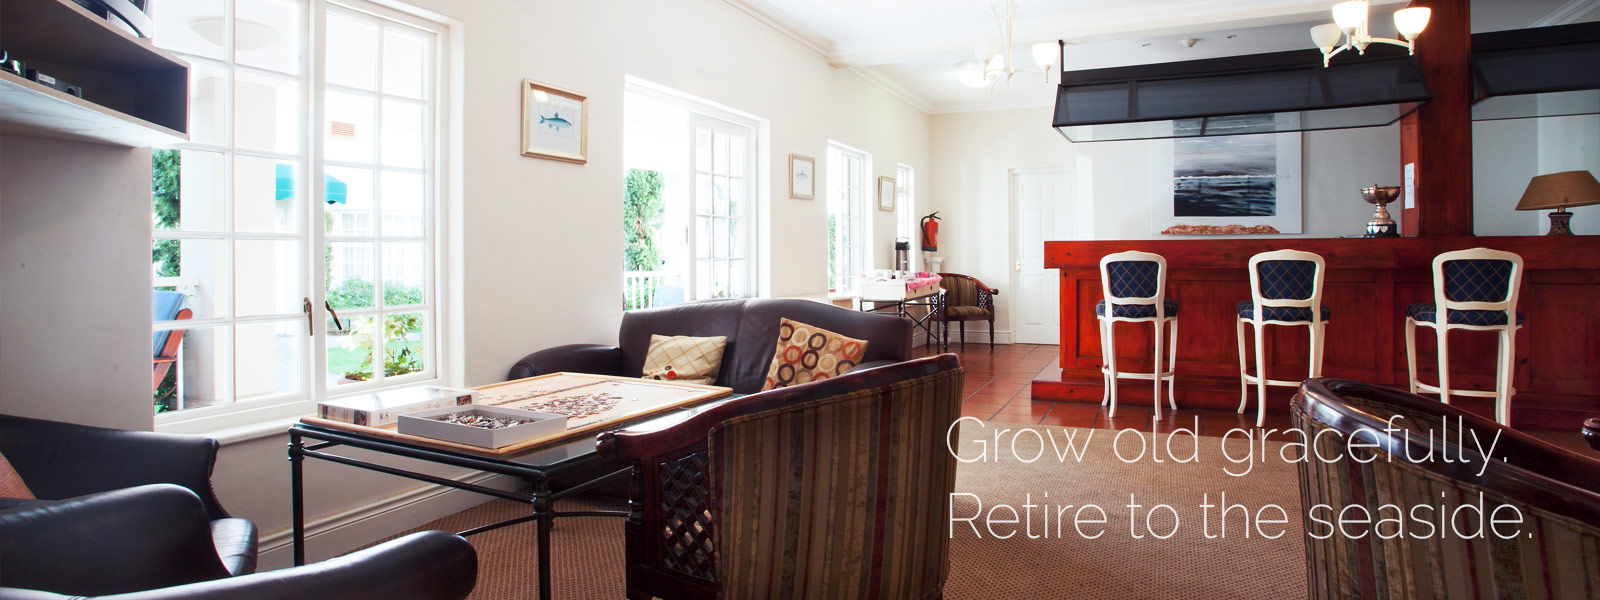 Avenue Retirement – Grow old gracefully: Retire to the seaside